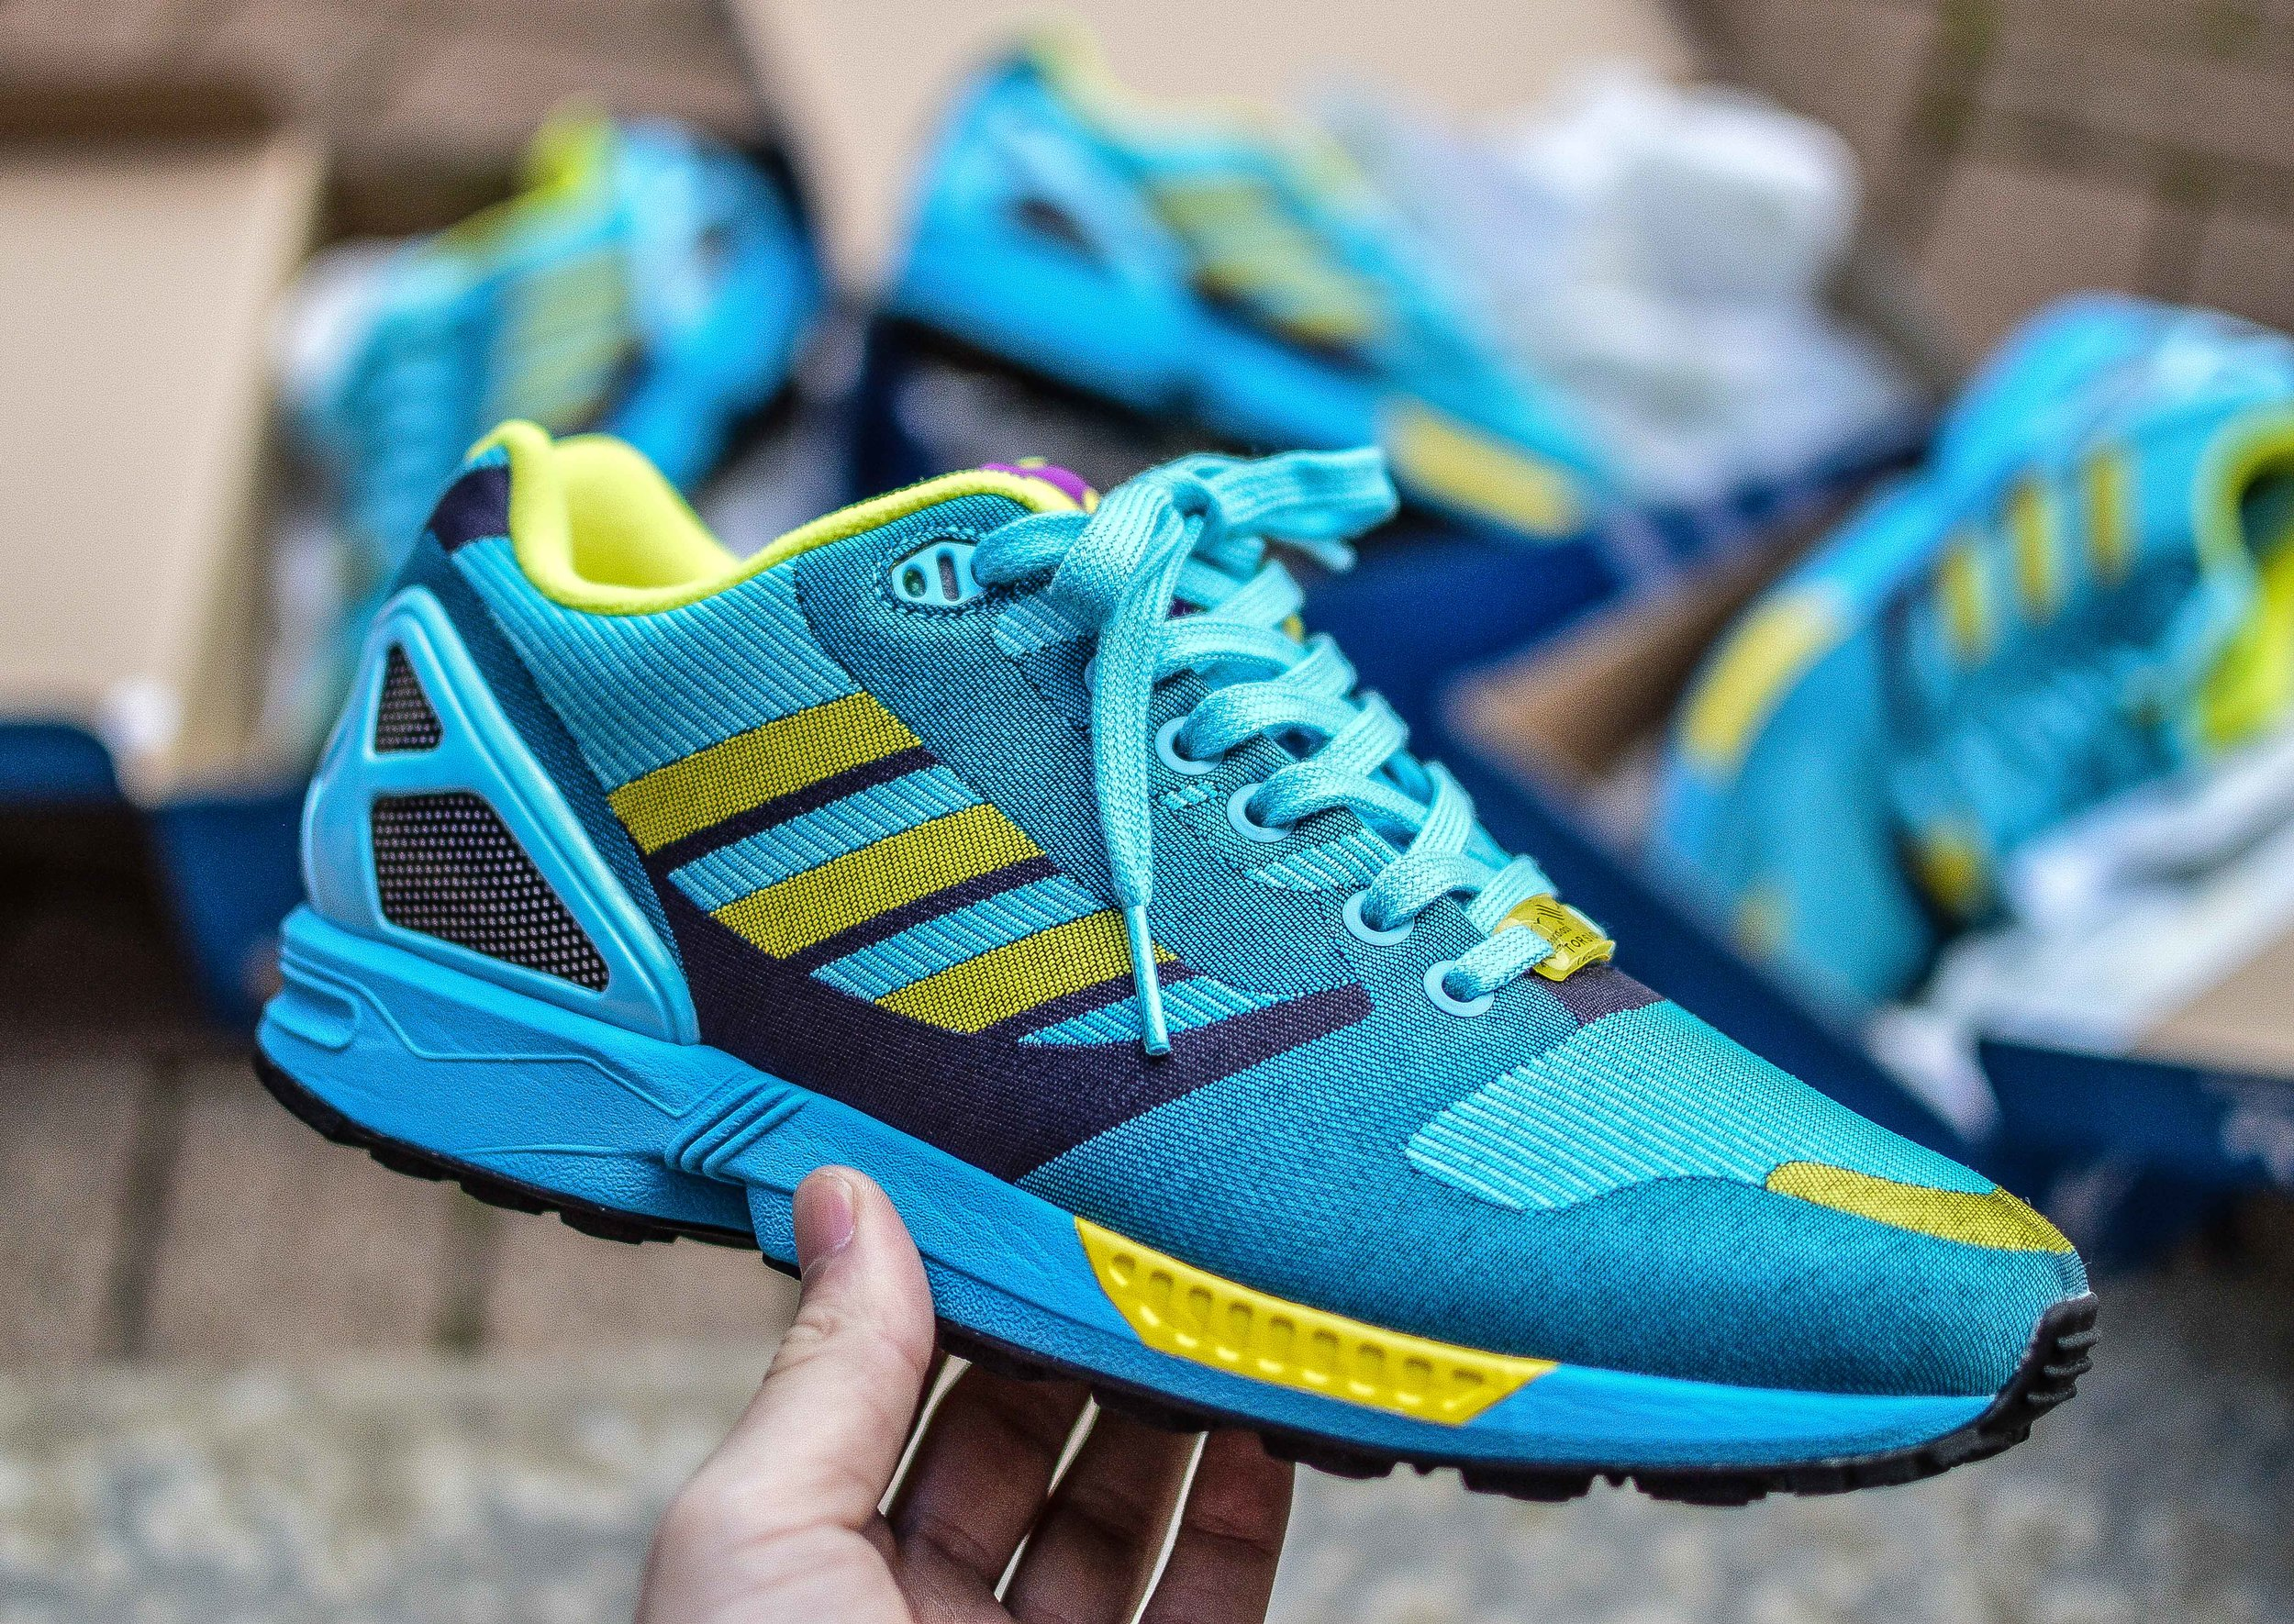 d282245366065e The whole  Flux  technology from Adidas has been the talk of the town for a  good while now